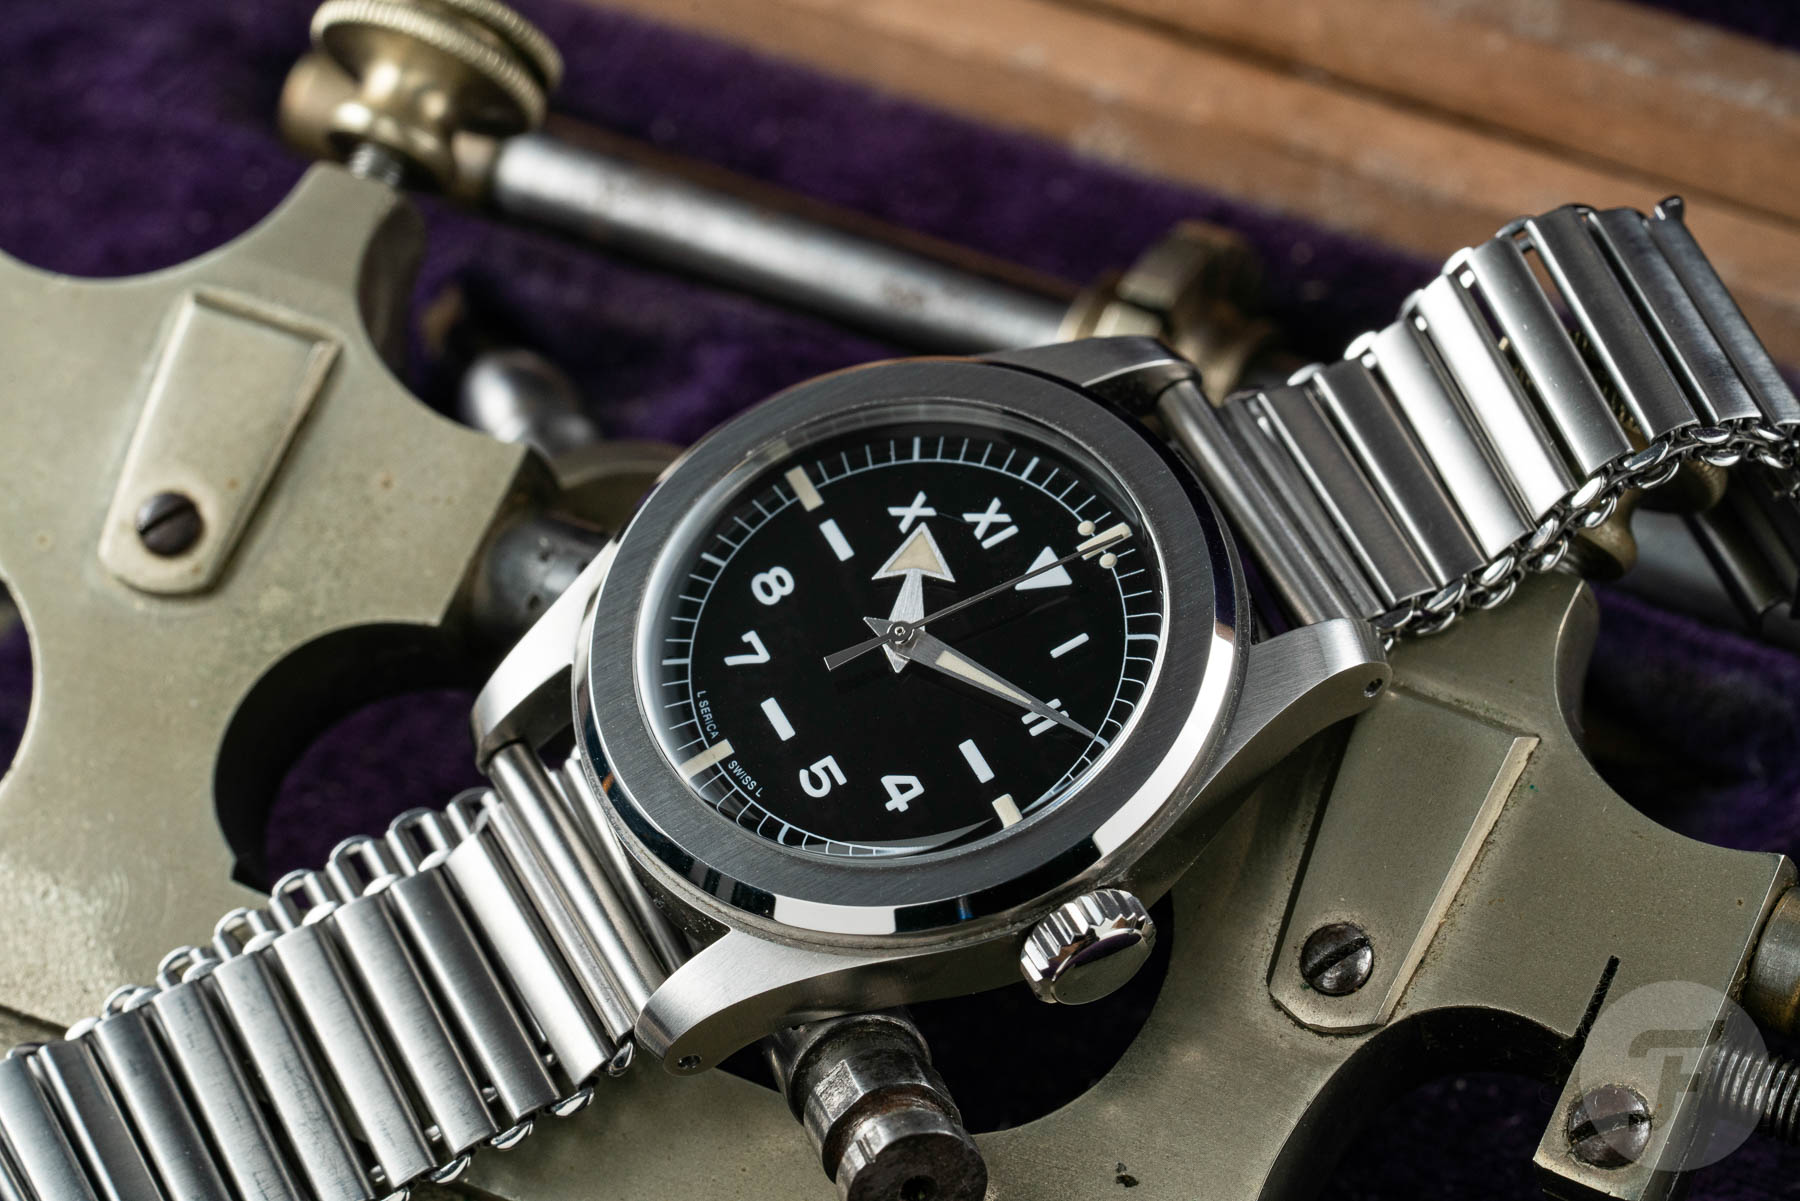 The Serica 4512 California Is A Surprisingly Refreshing Take On The Military Field Watch